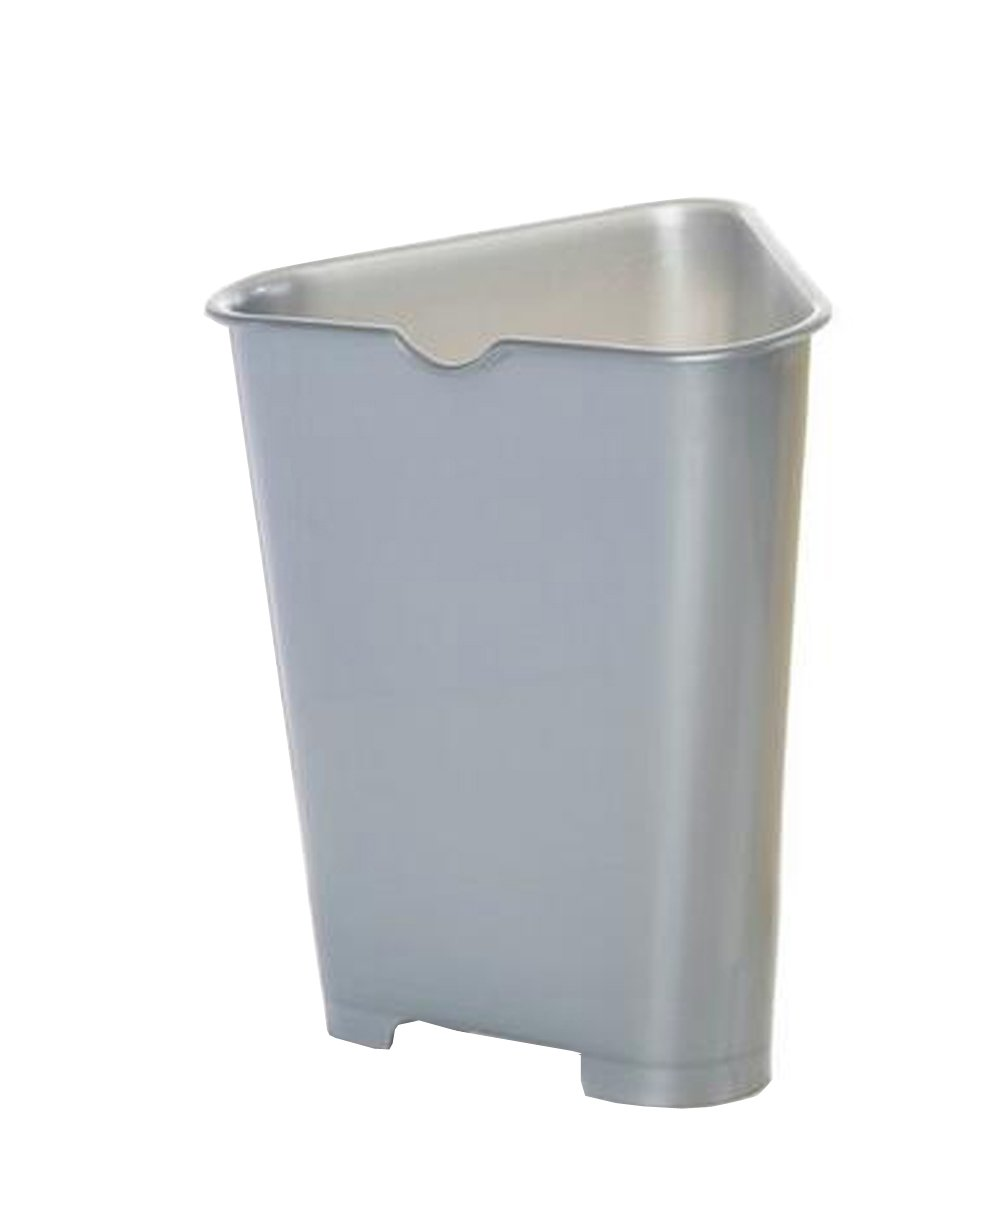 Amazon.com: Hflove Triangle Kitchen Trash Can Plastic Corner Kitchen ...